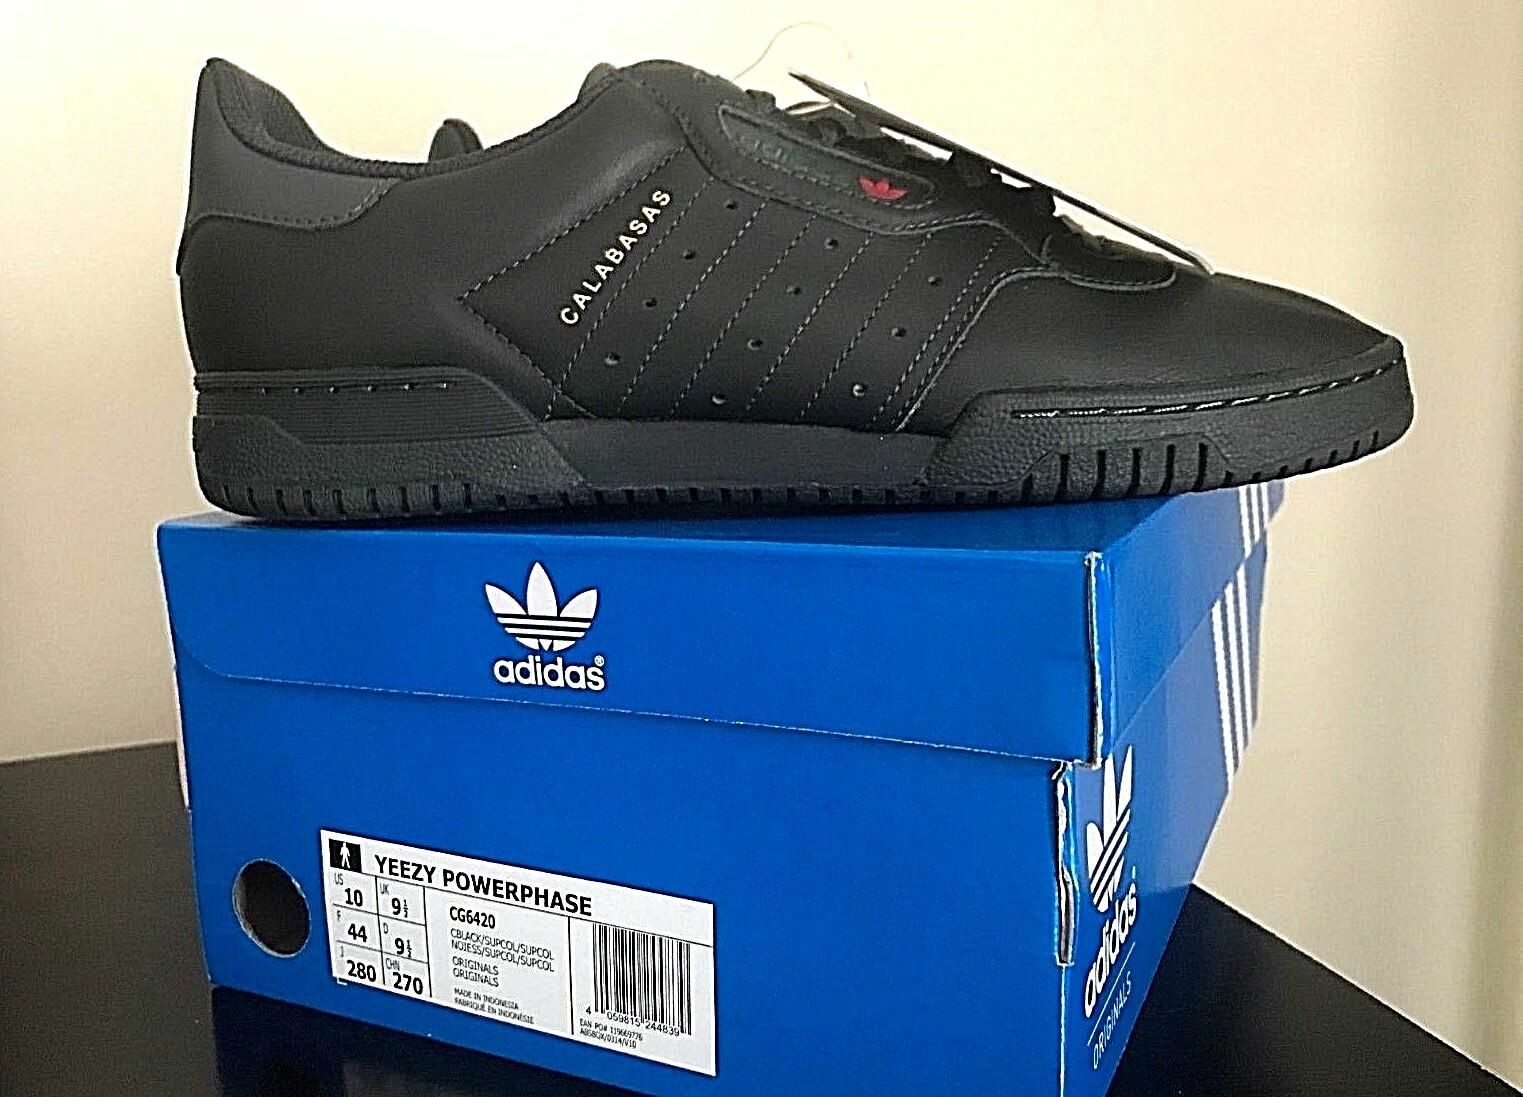 RARE New 2018 Adidas Yeezy Powerphase Calabasas Limited Edition Trainers Black